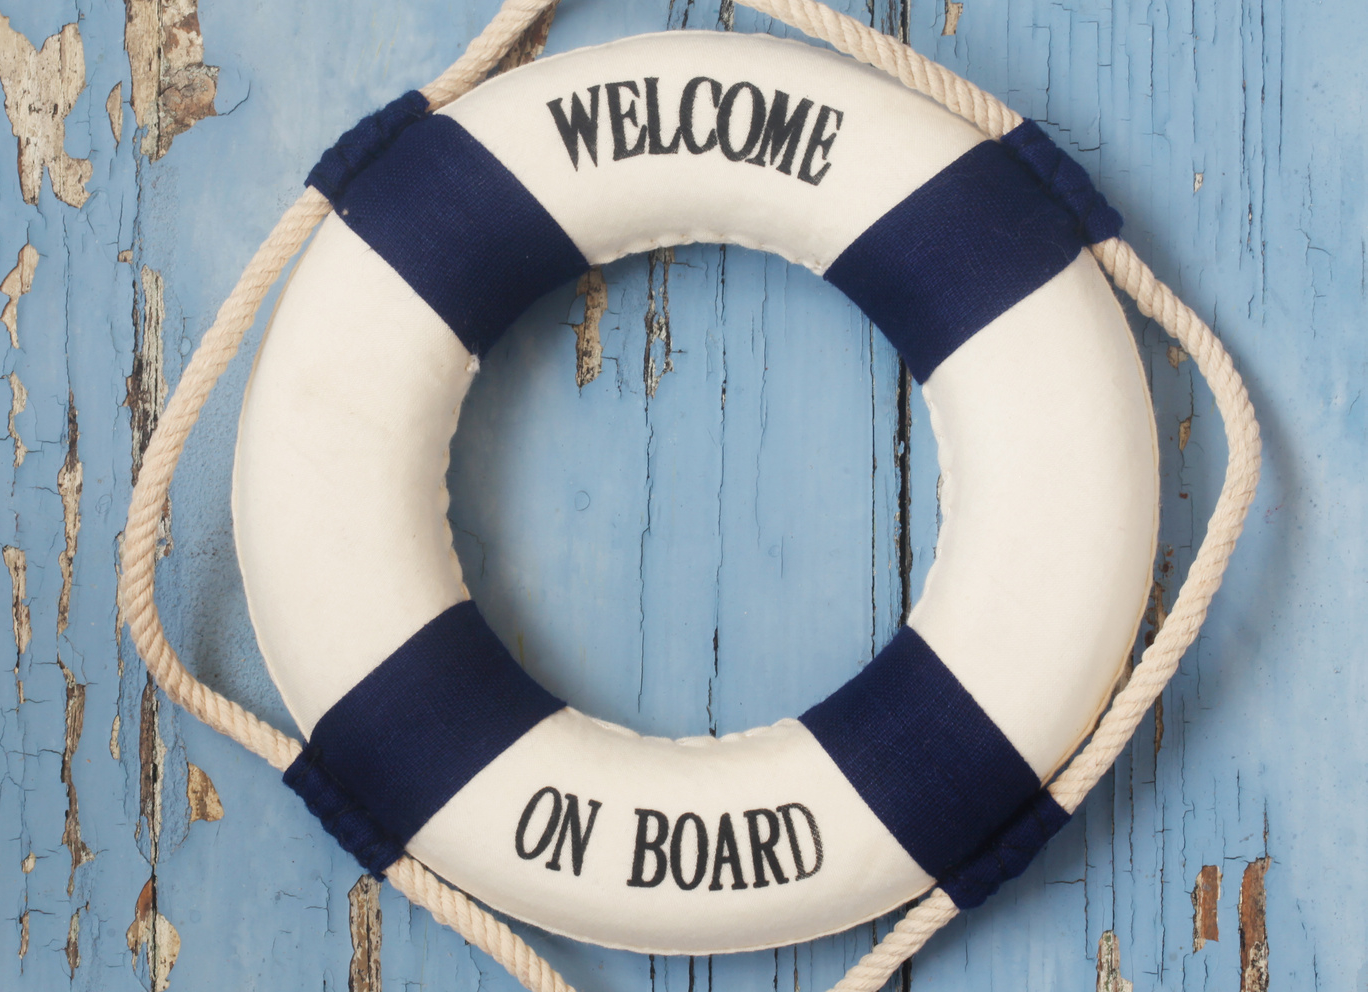 Foto: welcomeonboard_Fotolia_66224825_